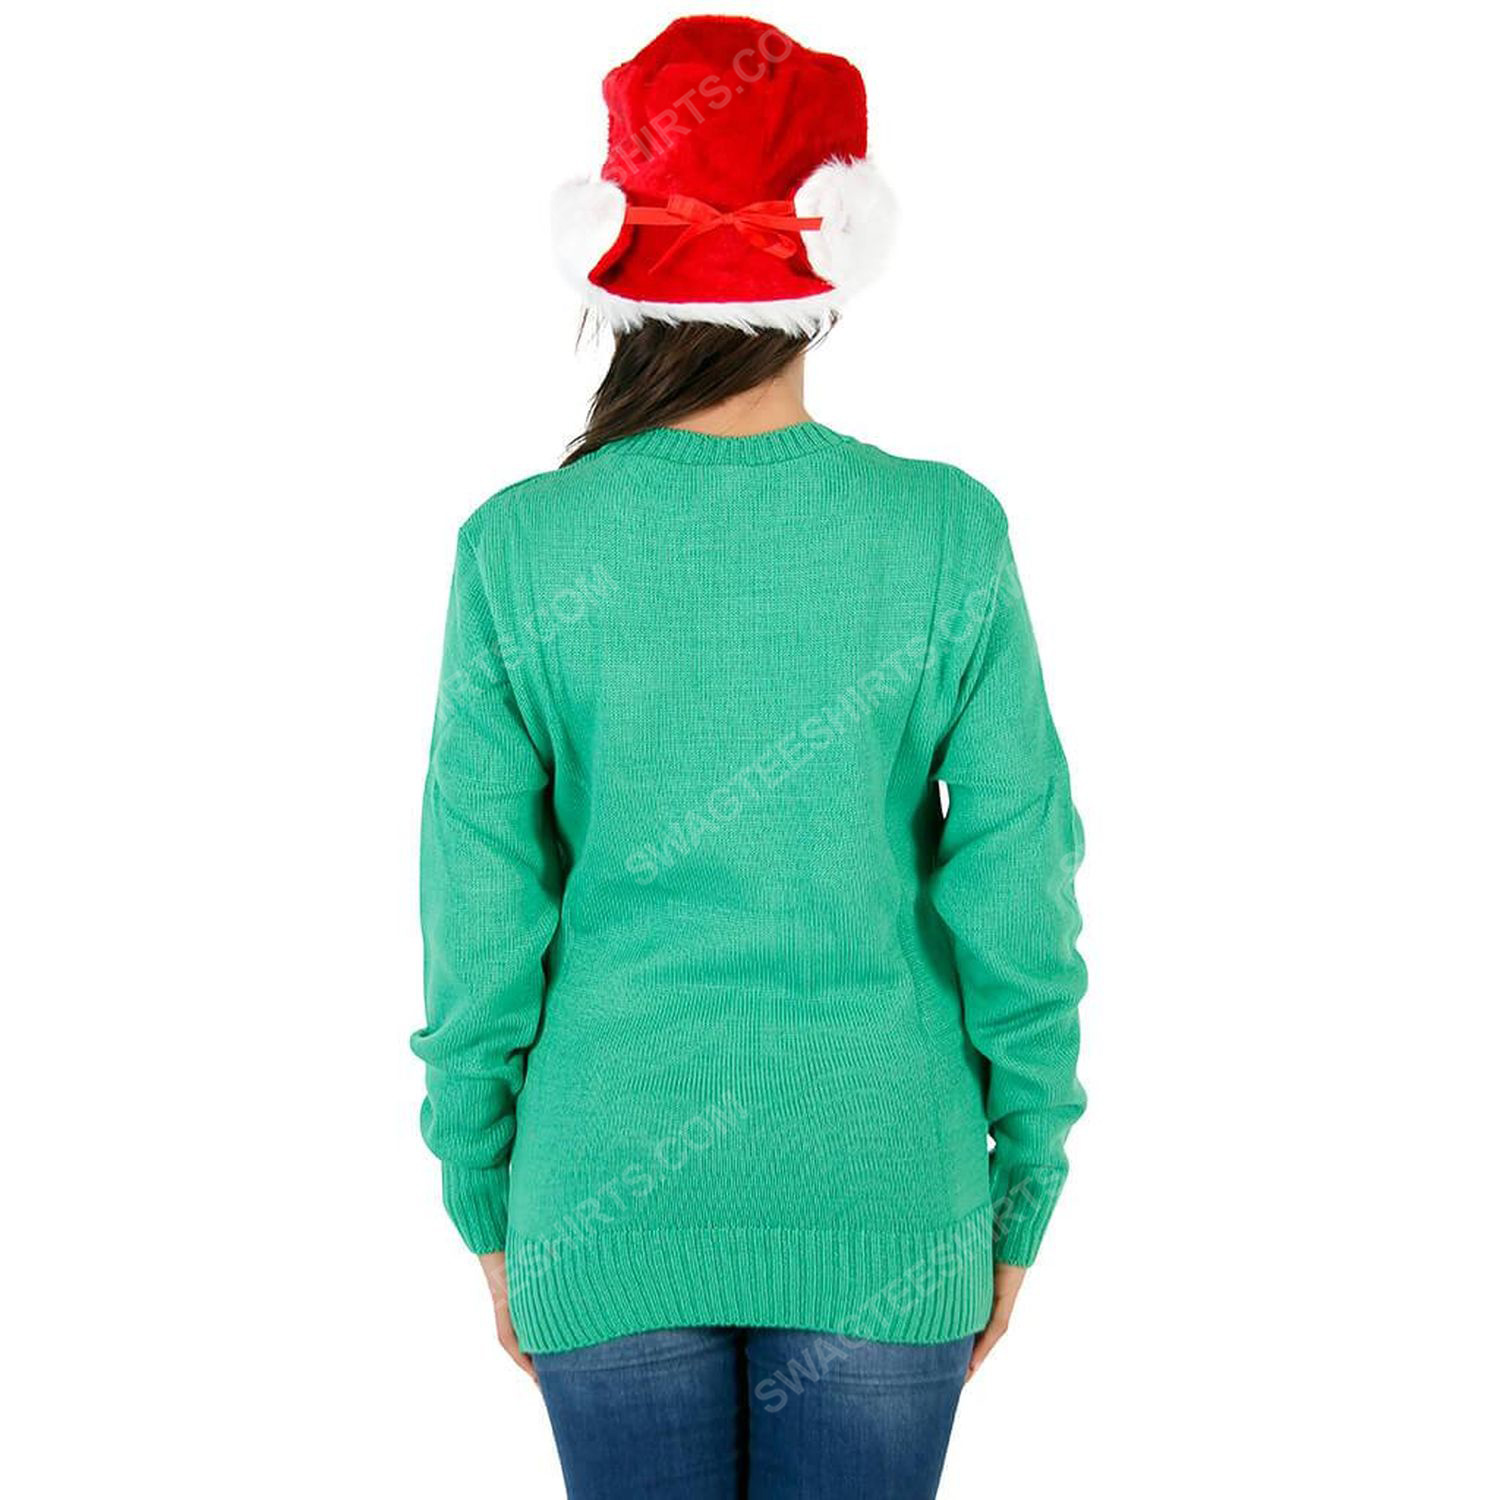 The grinch face full print ugly christmas sweater 3